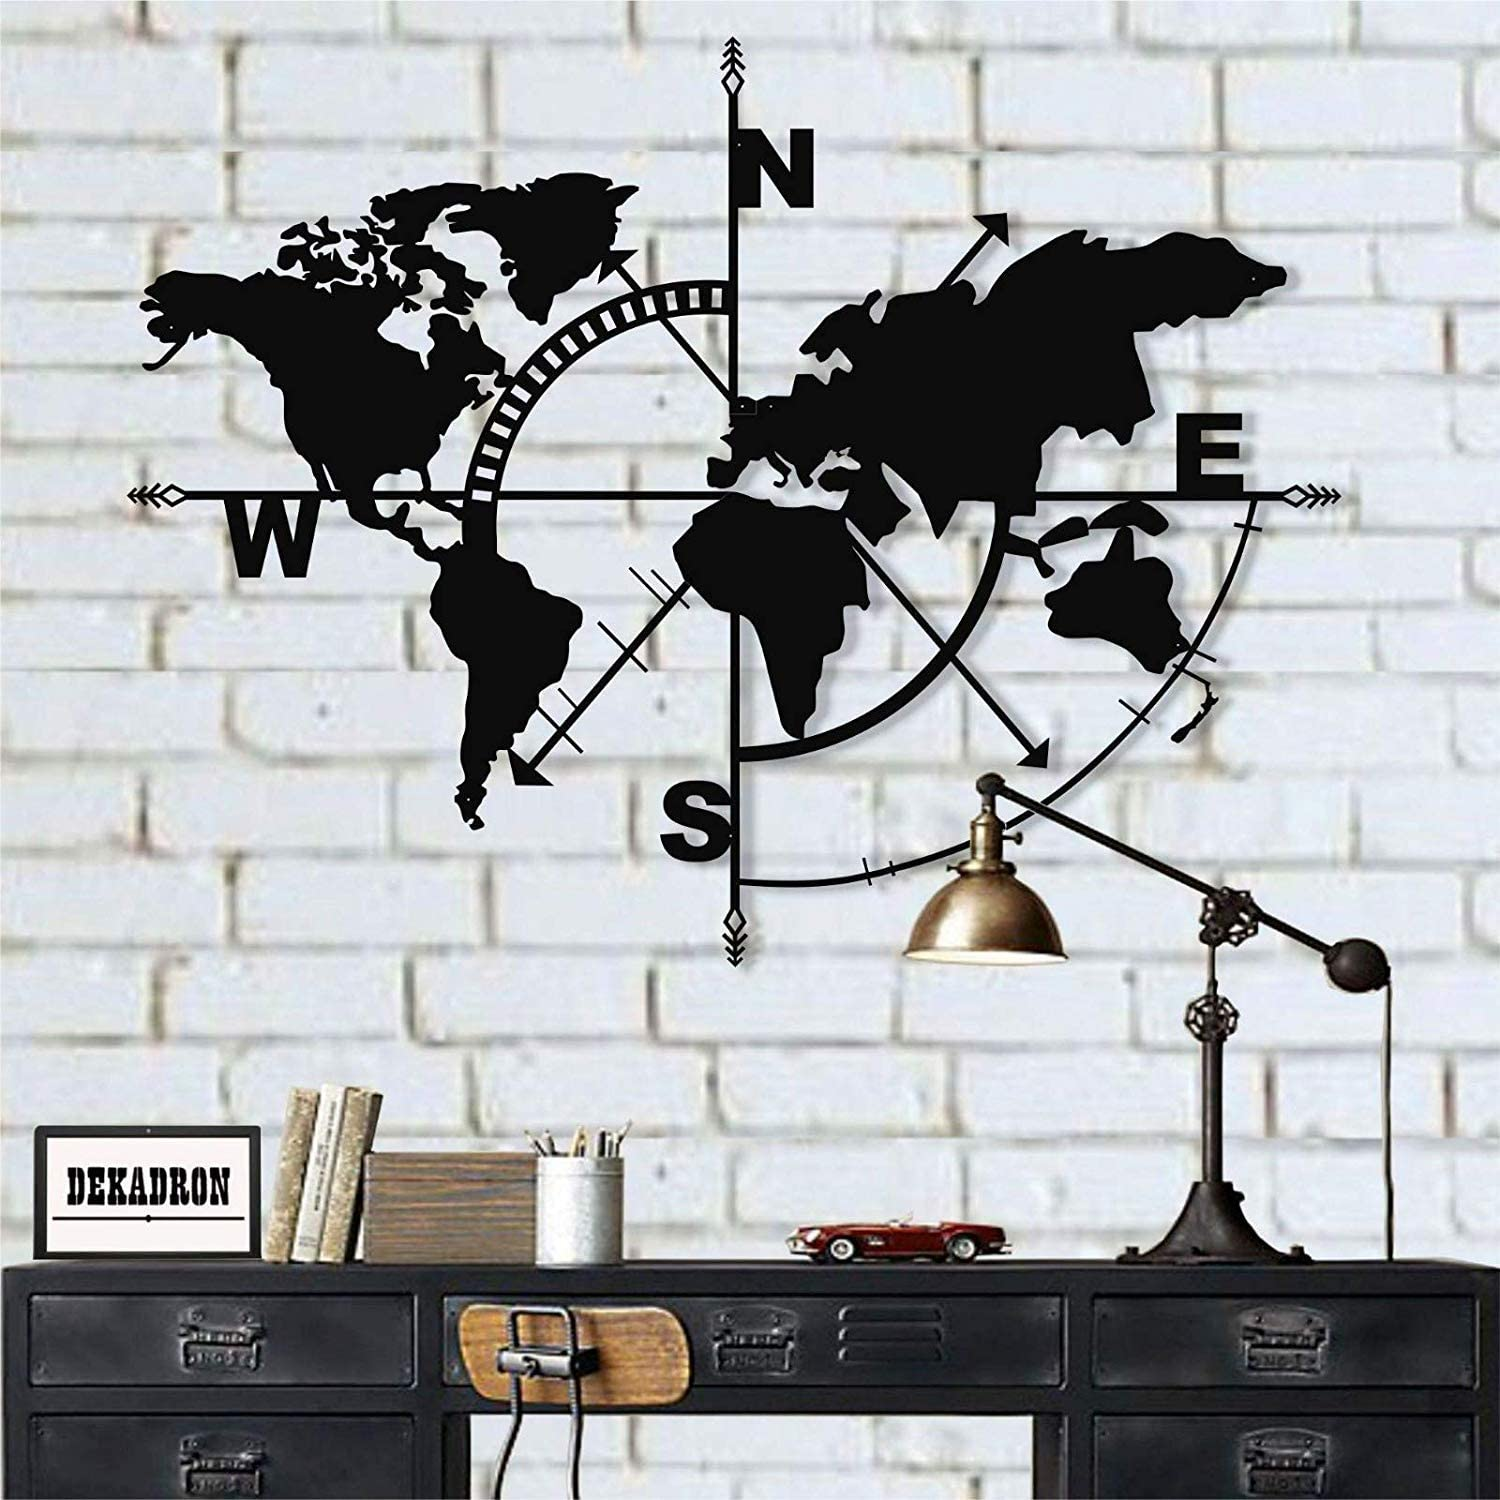 Amazon Com Metal World Map Metal Weltkarte 3d Wall Silhouette Metal Wall Decor Home Office Decoration Bedroom Living Room Decor Sculpture Black 40 W X 30 H 101x76cm Everything Else